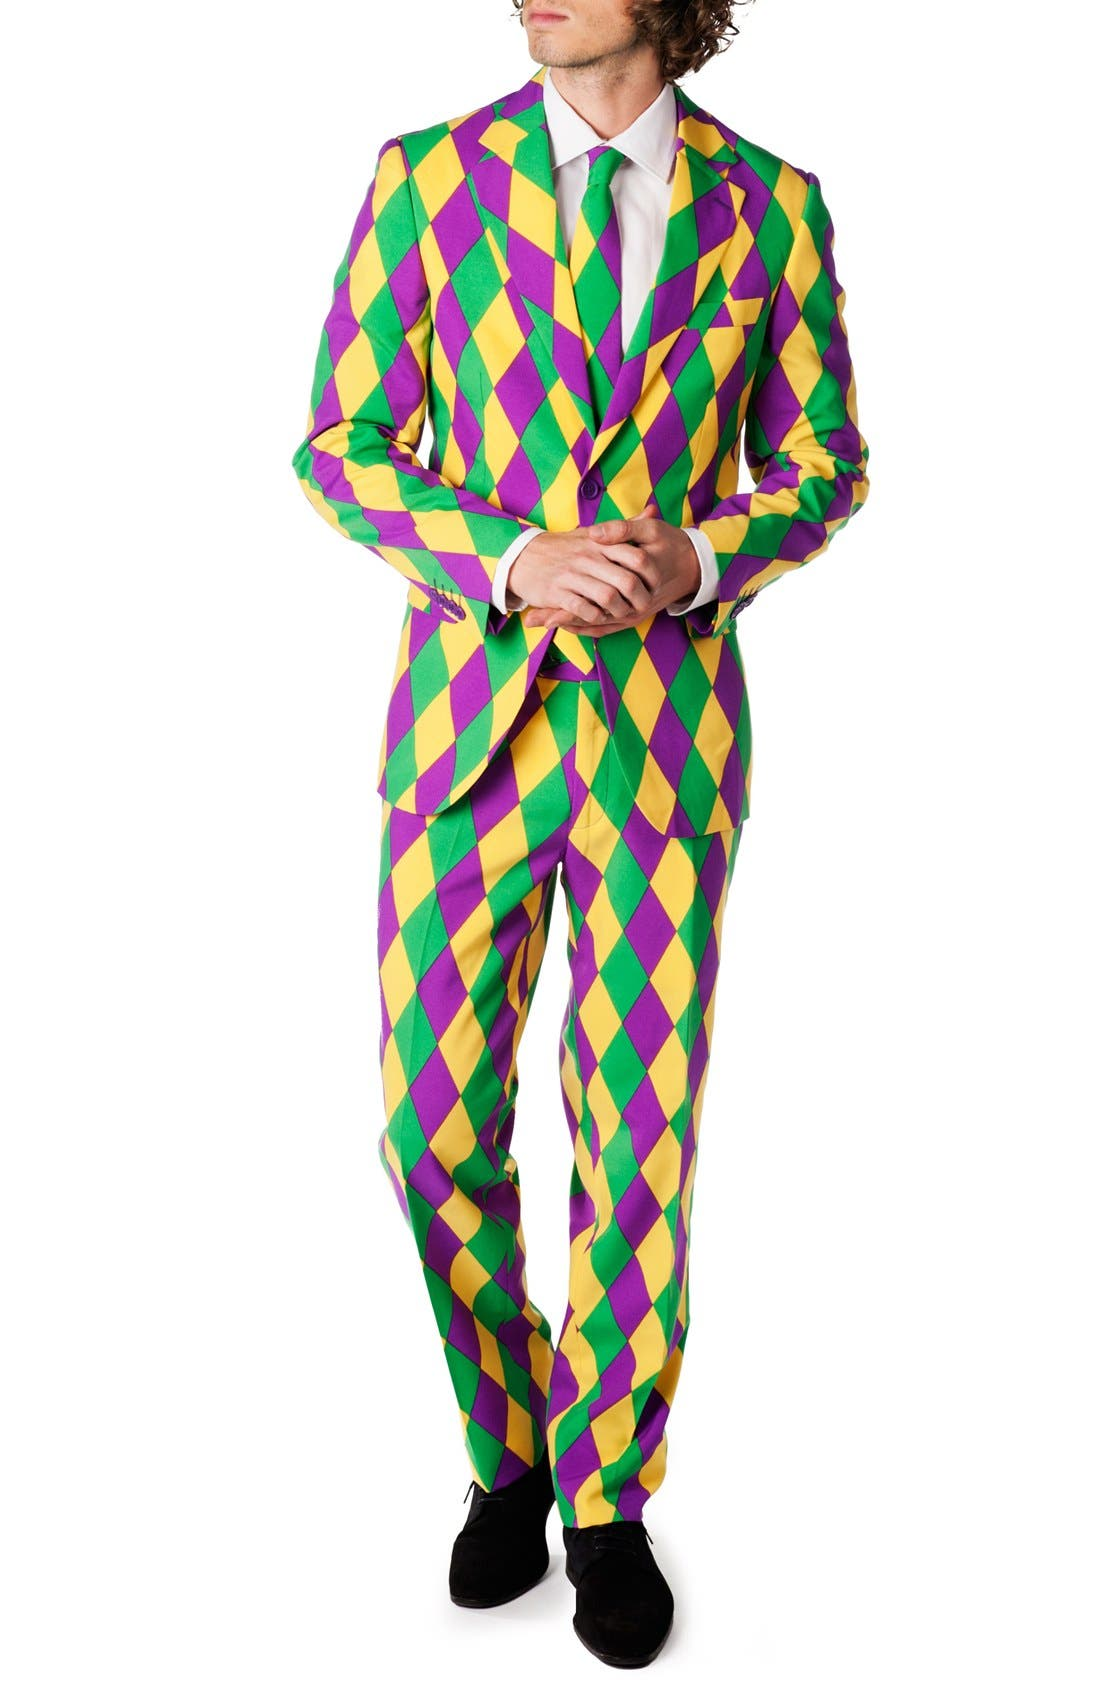 'Harleking' Trim Fit Suit with Tie,                             Main thumbnail 1, color,